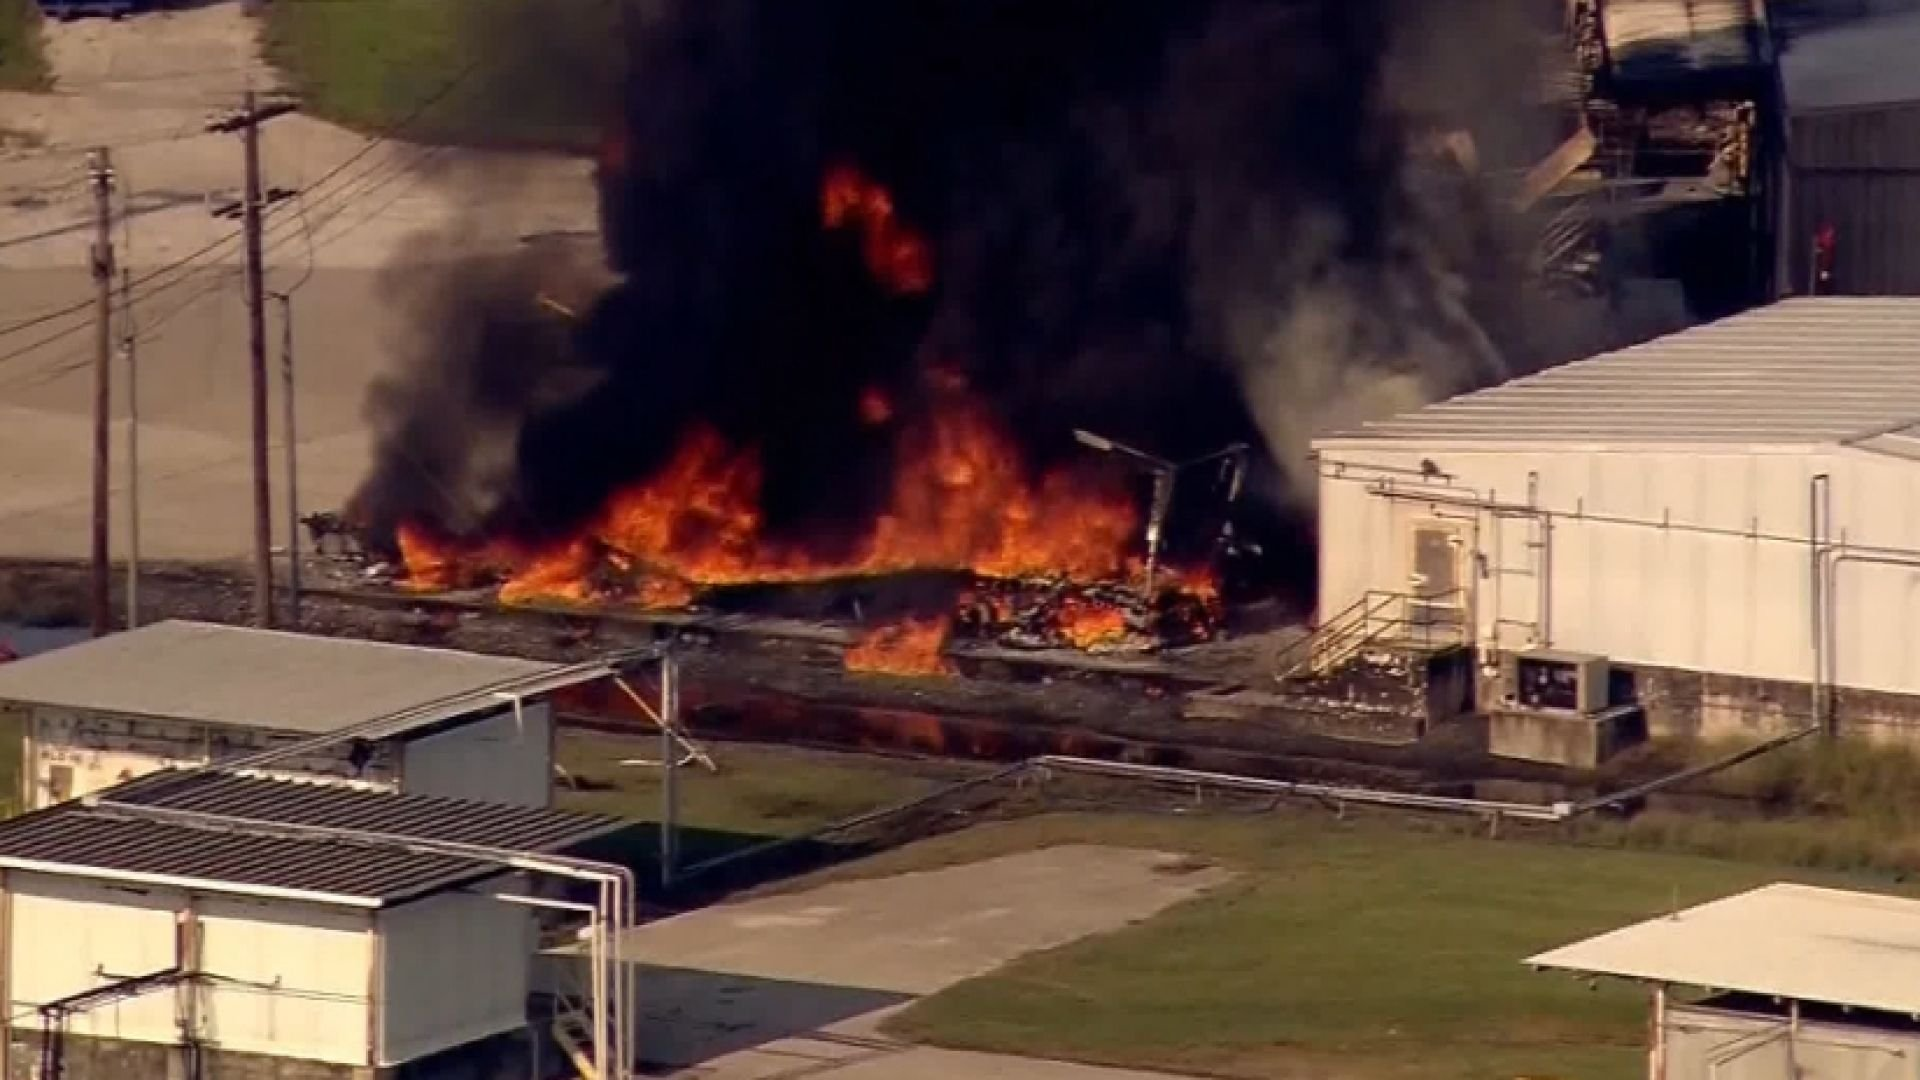 Attorneys representing several first responders filed a lawsuit Thursday in the wake of the chemical fire at the Arkema chemical plant.